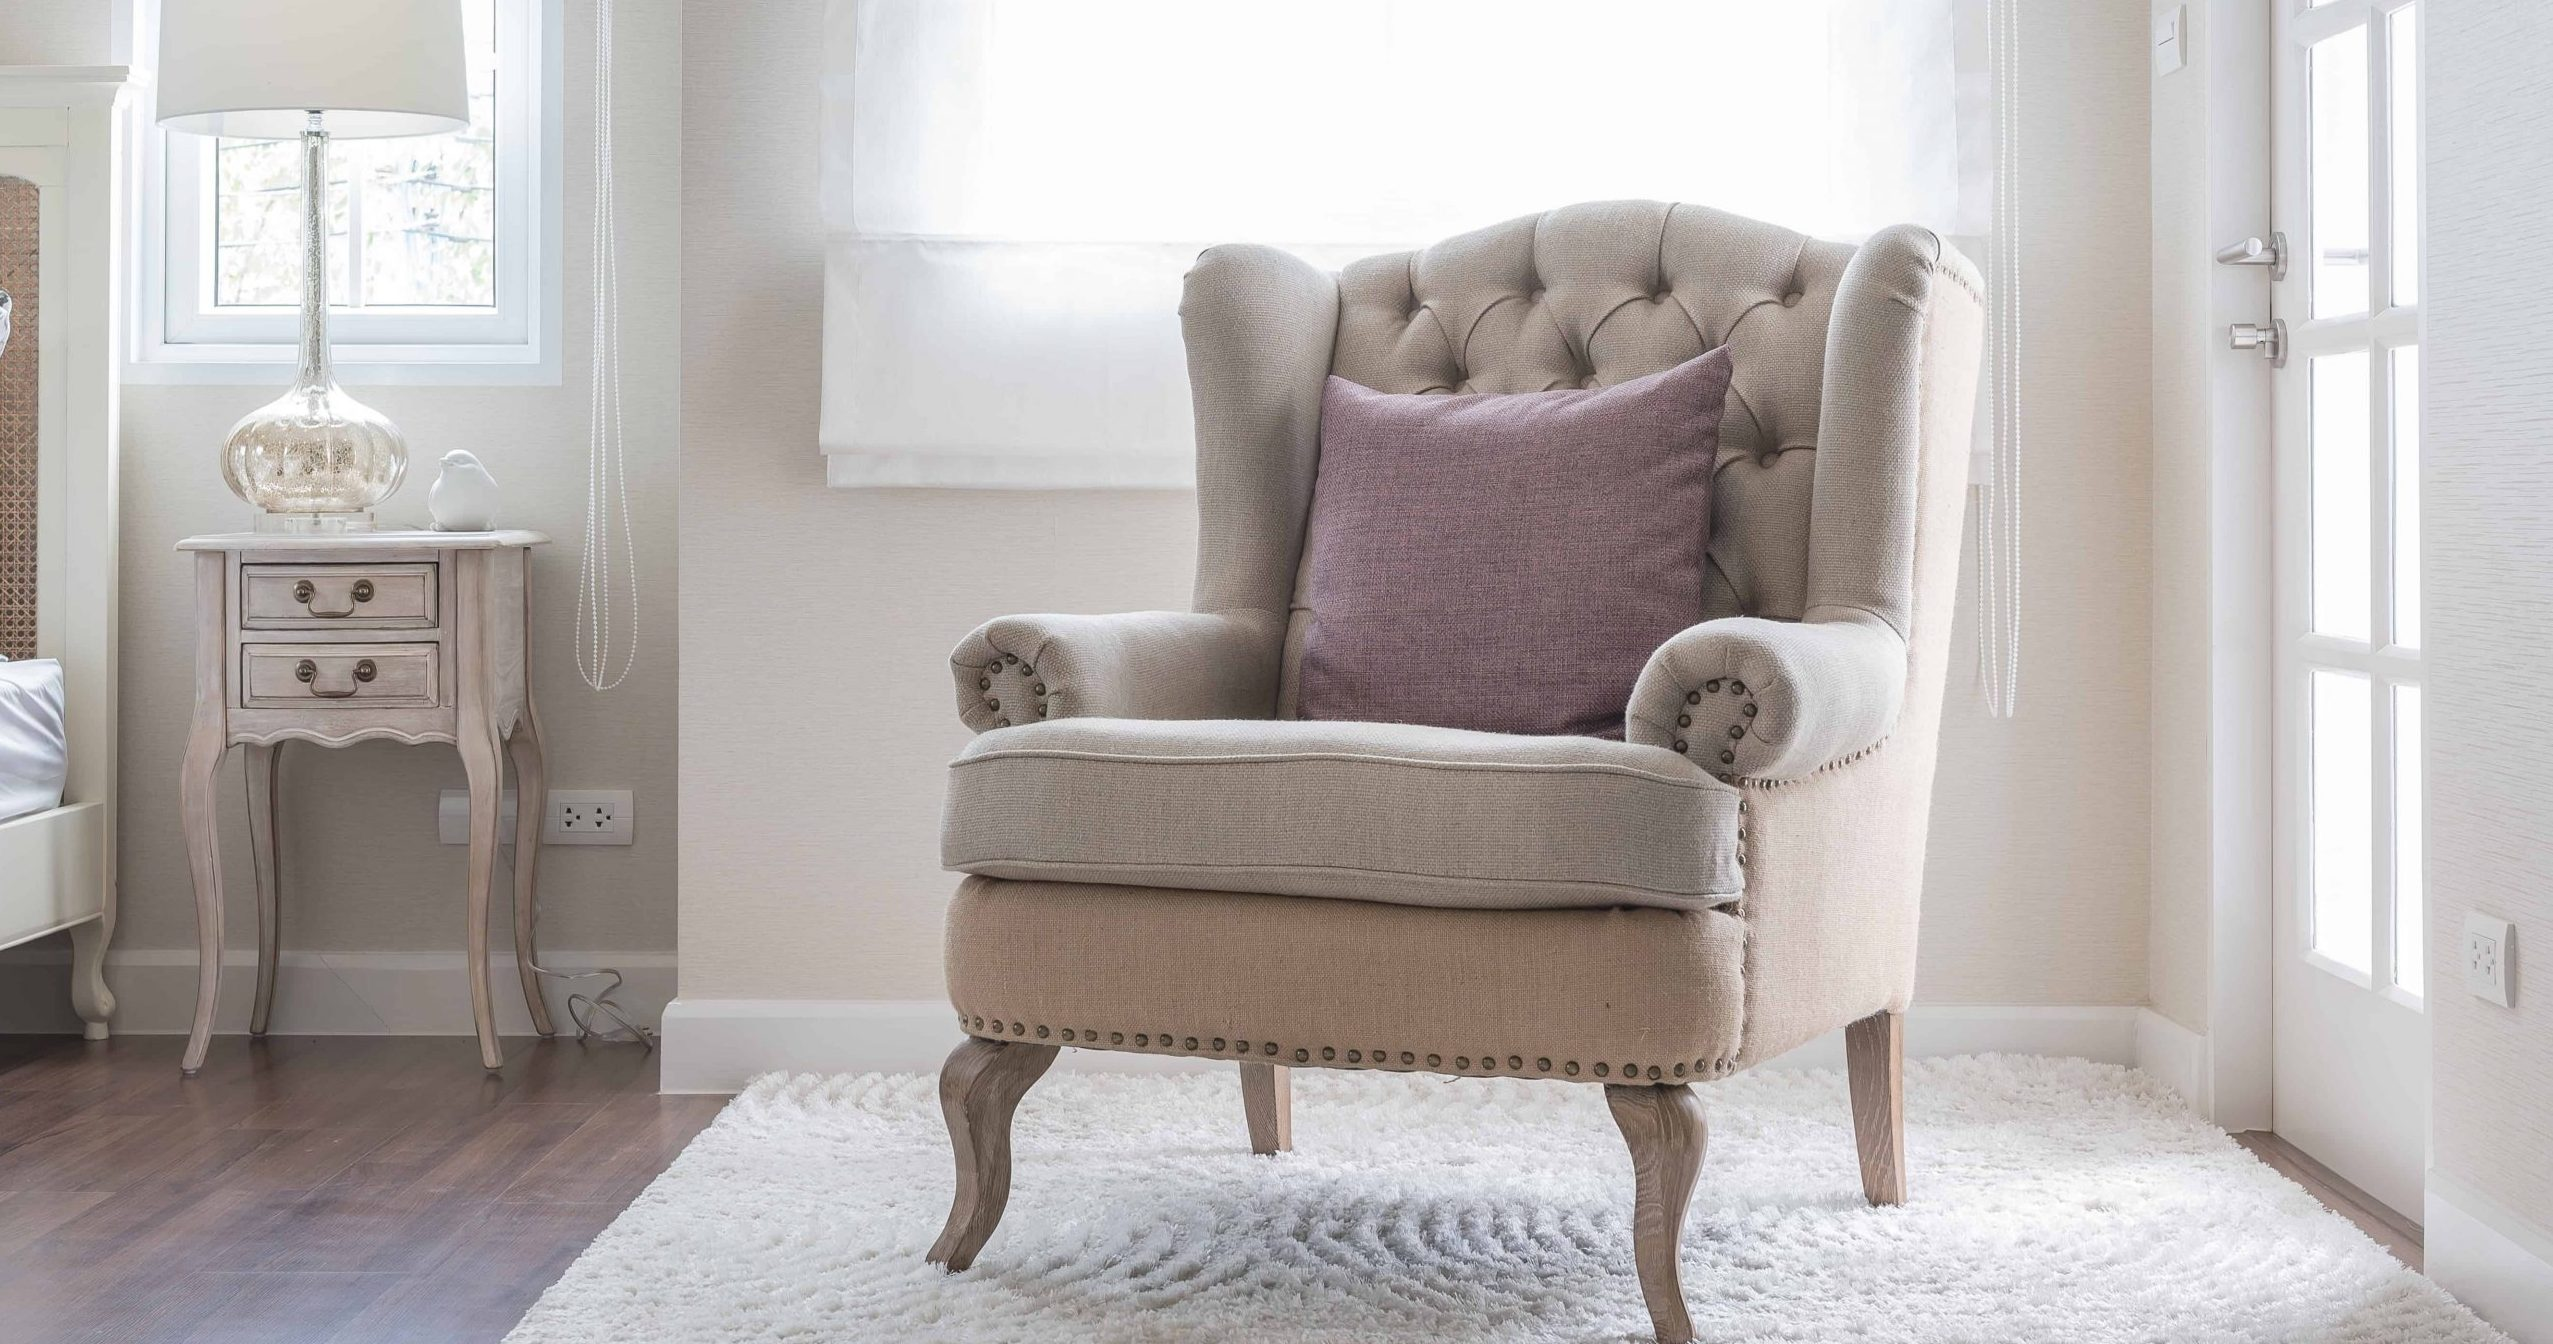 Best Wing-Back Chair 2020: Shopping Guide & Review